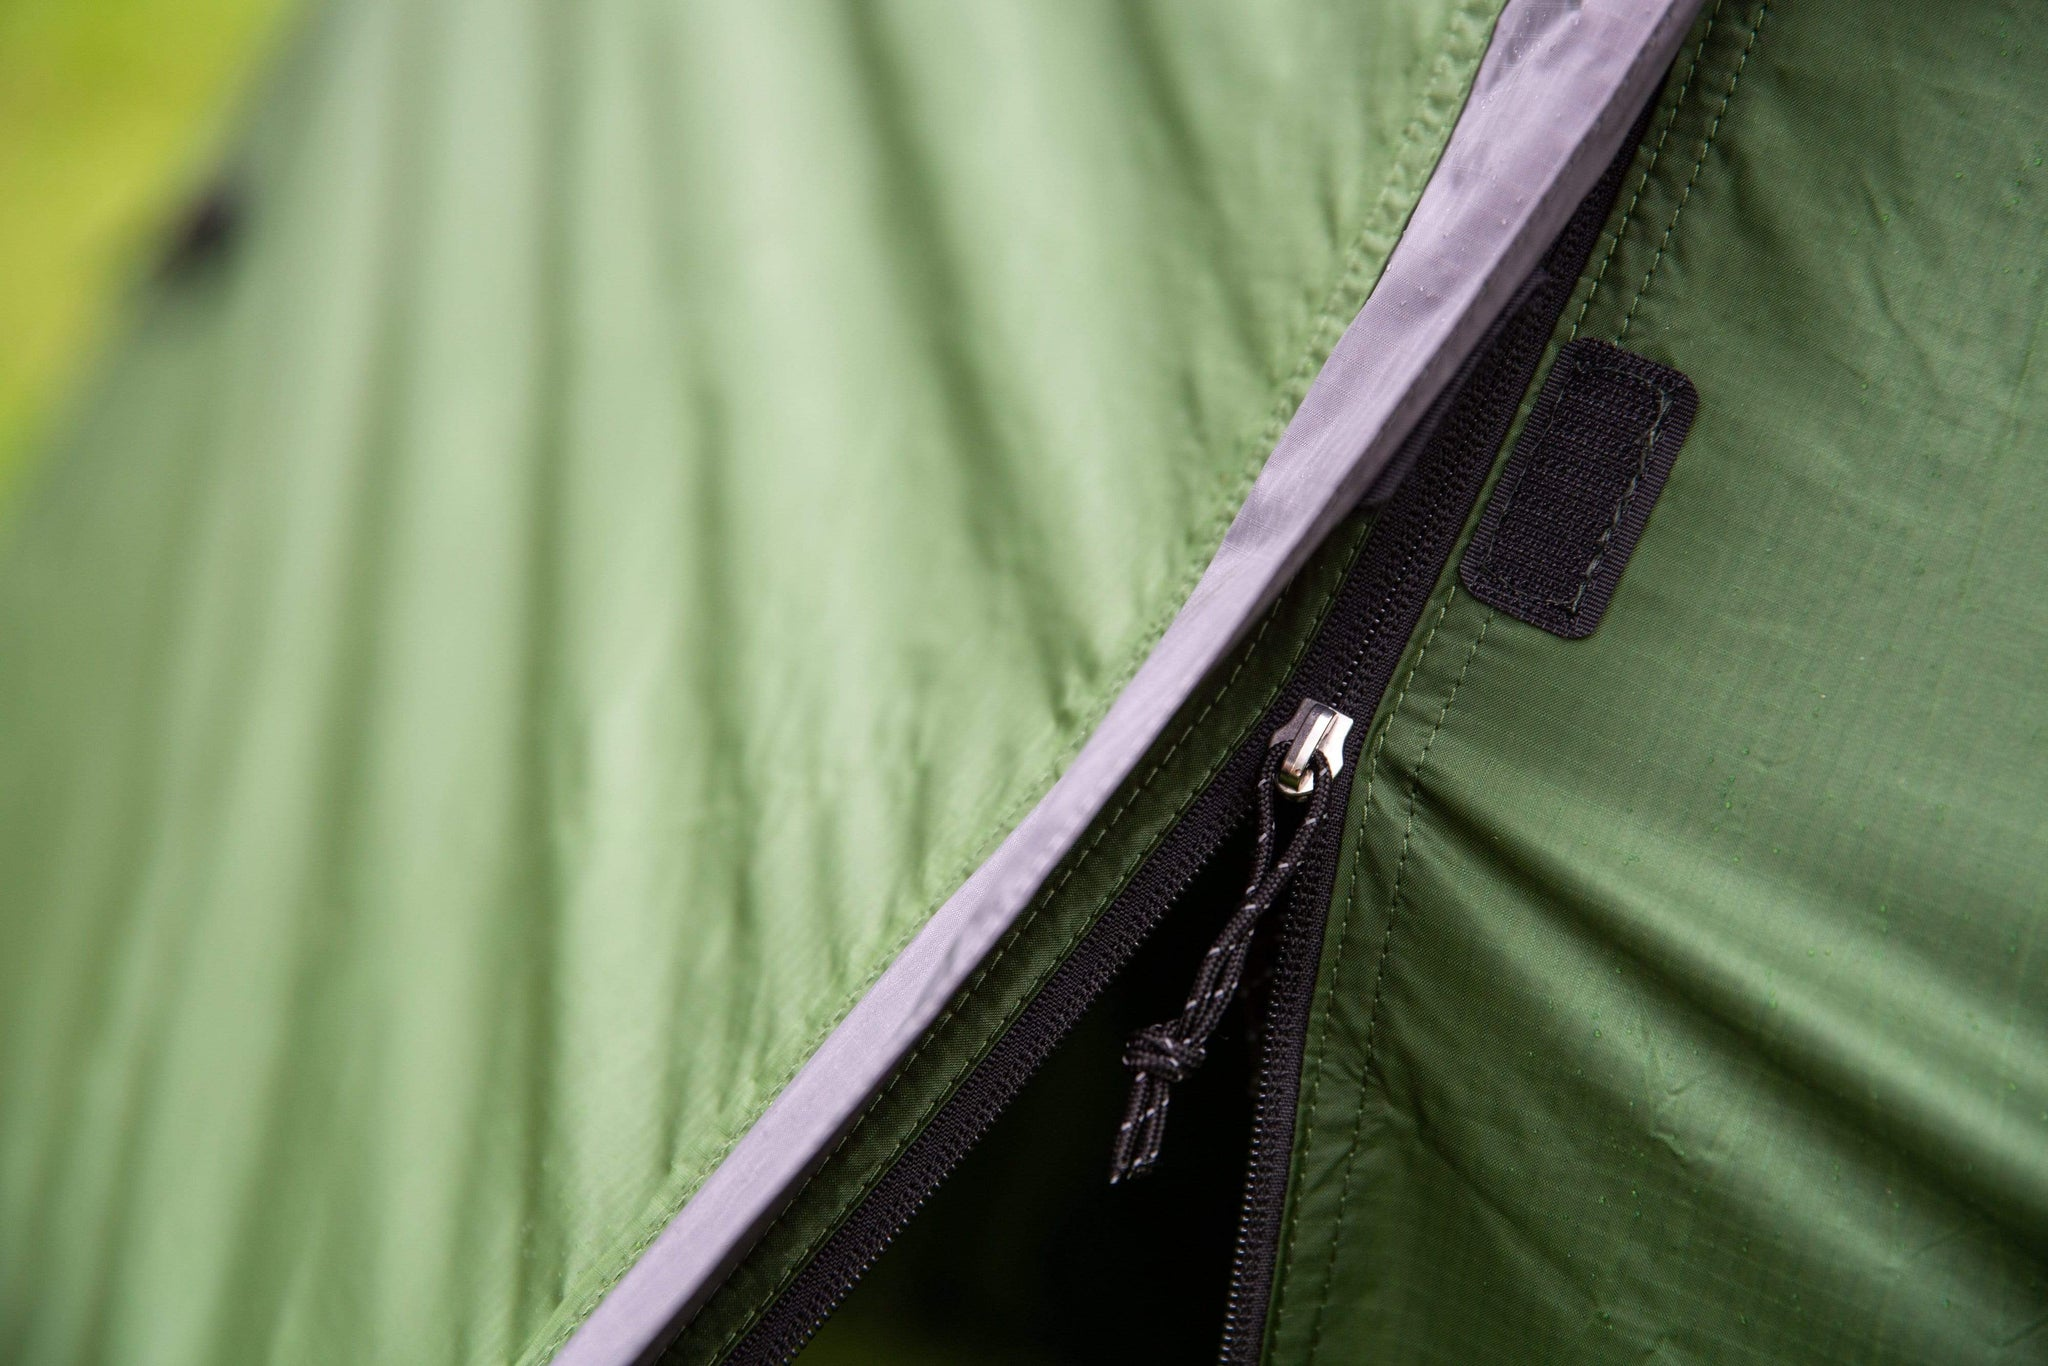 Close-up of a tent zip on the outer tent